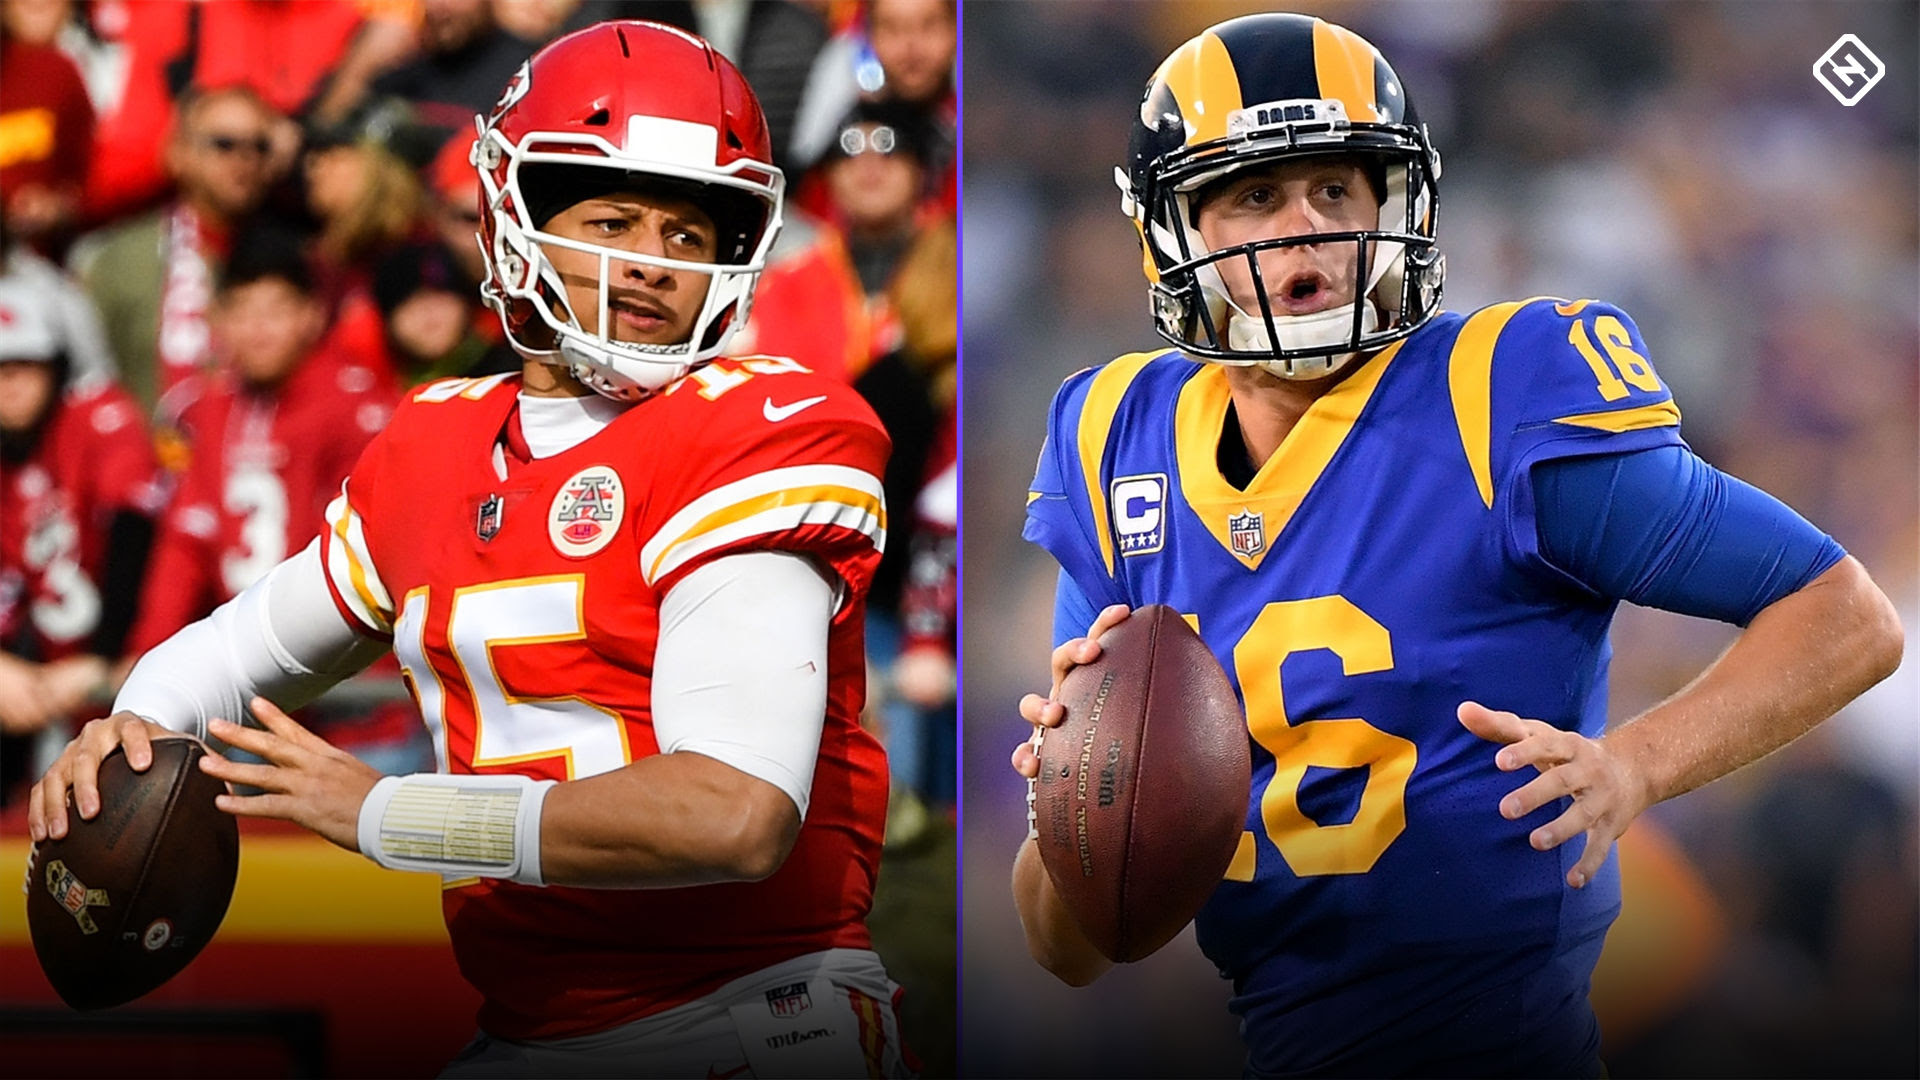 NFL playoff picture: Chiefs, Steelers match 12 punch of Rams, Saints  NFL  Sporting News